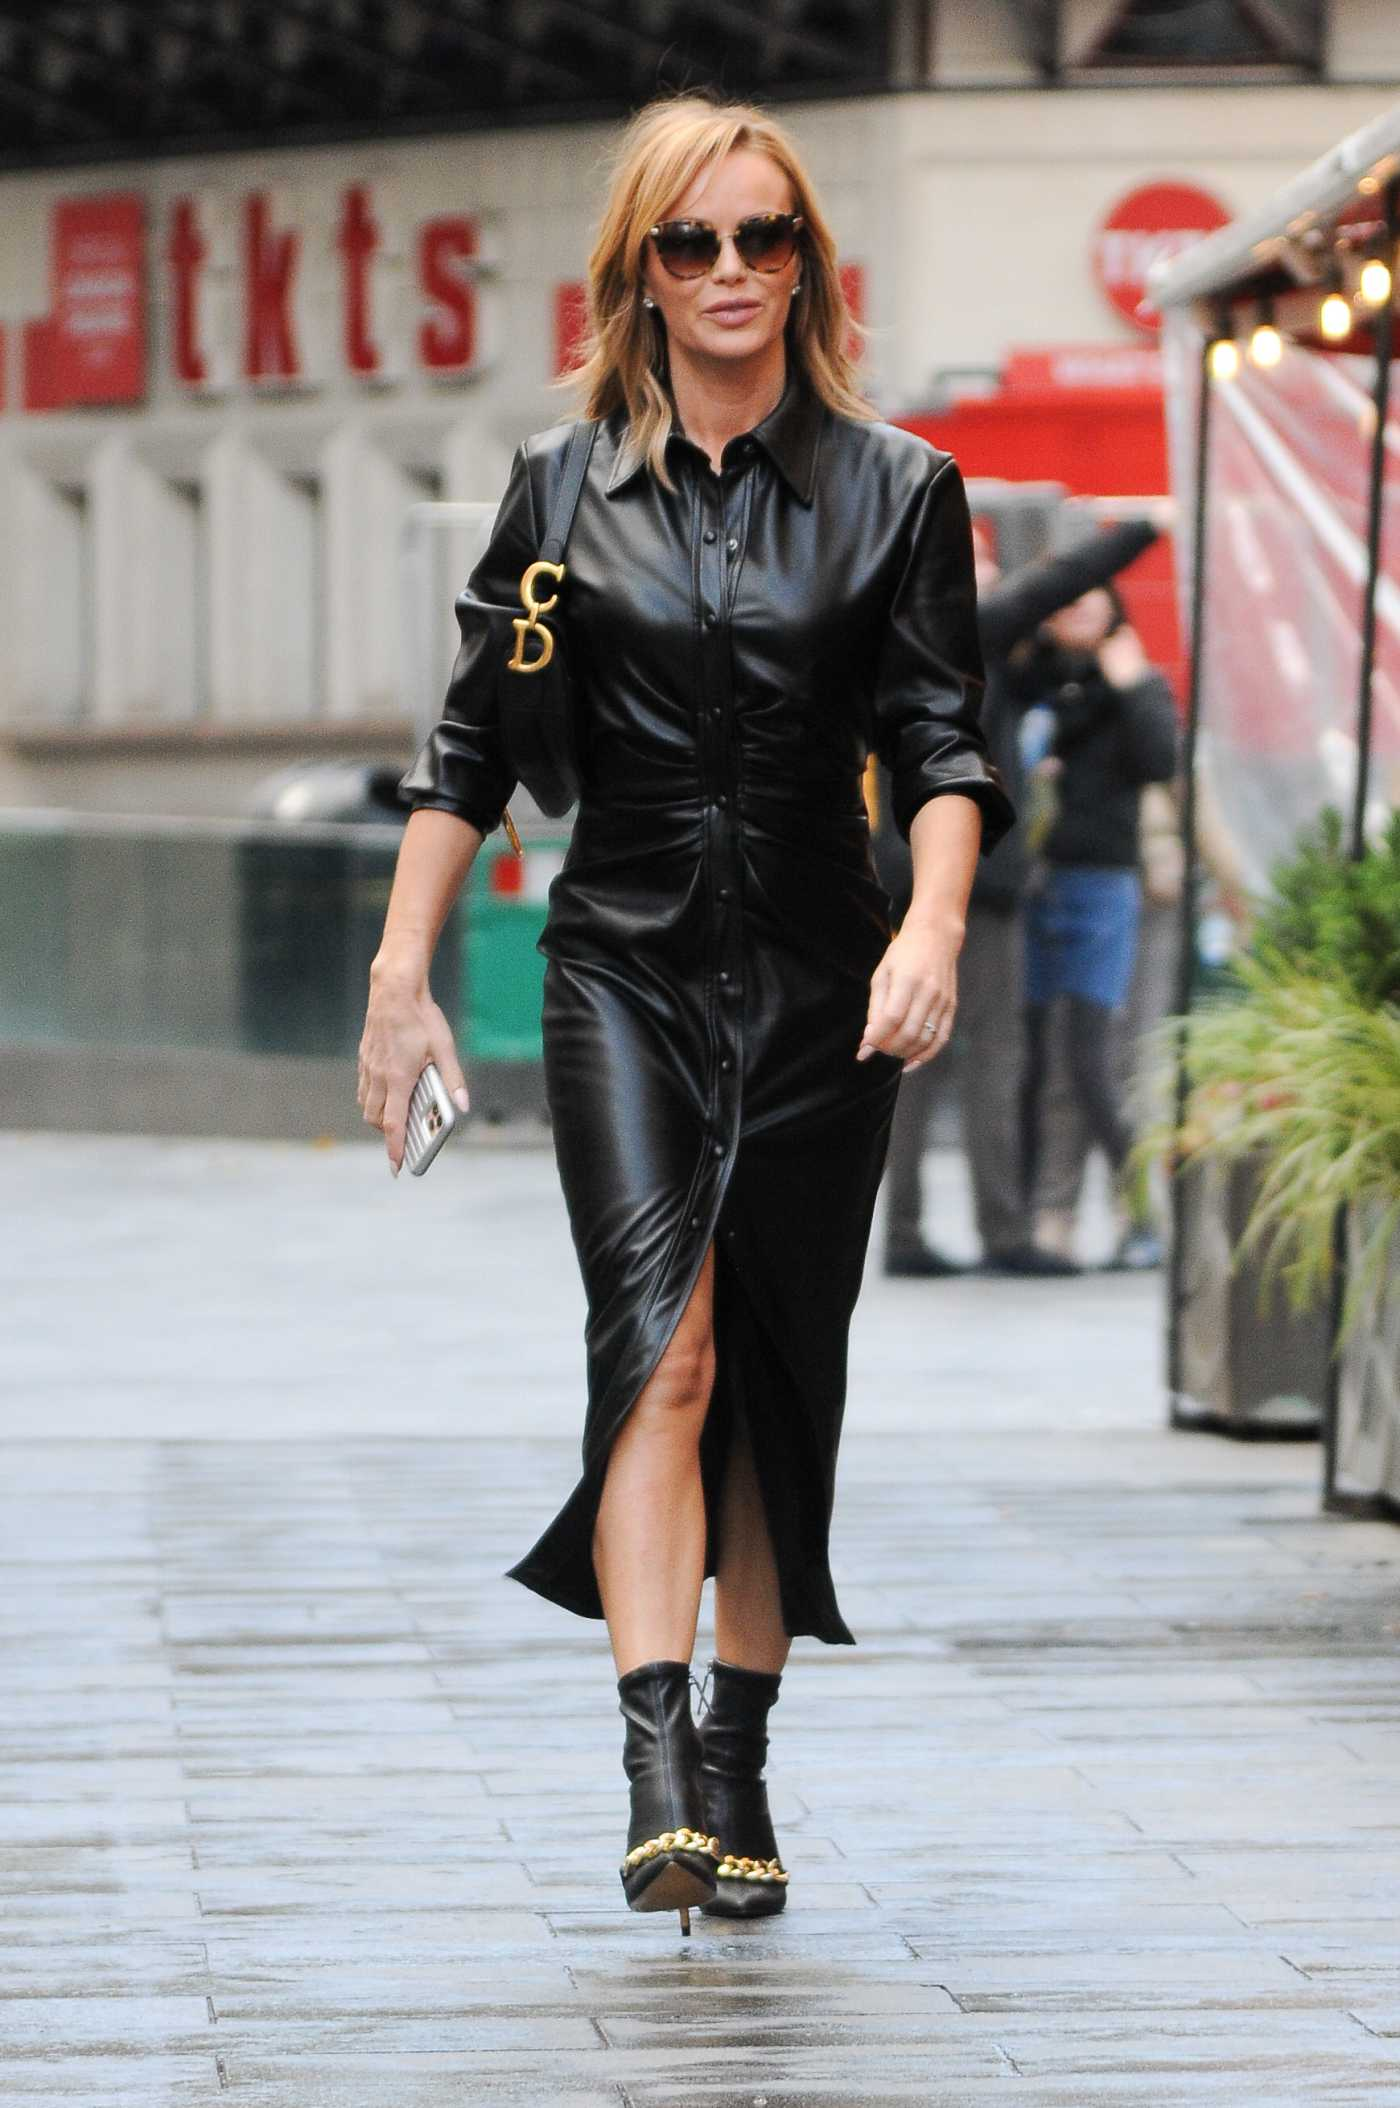 Amanda Holden in a Black Leather Dress Arrives at the Heart Radio Show in London 11/02/2020